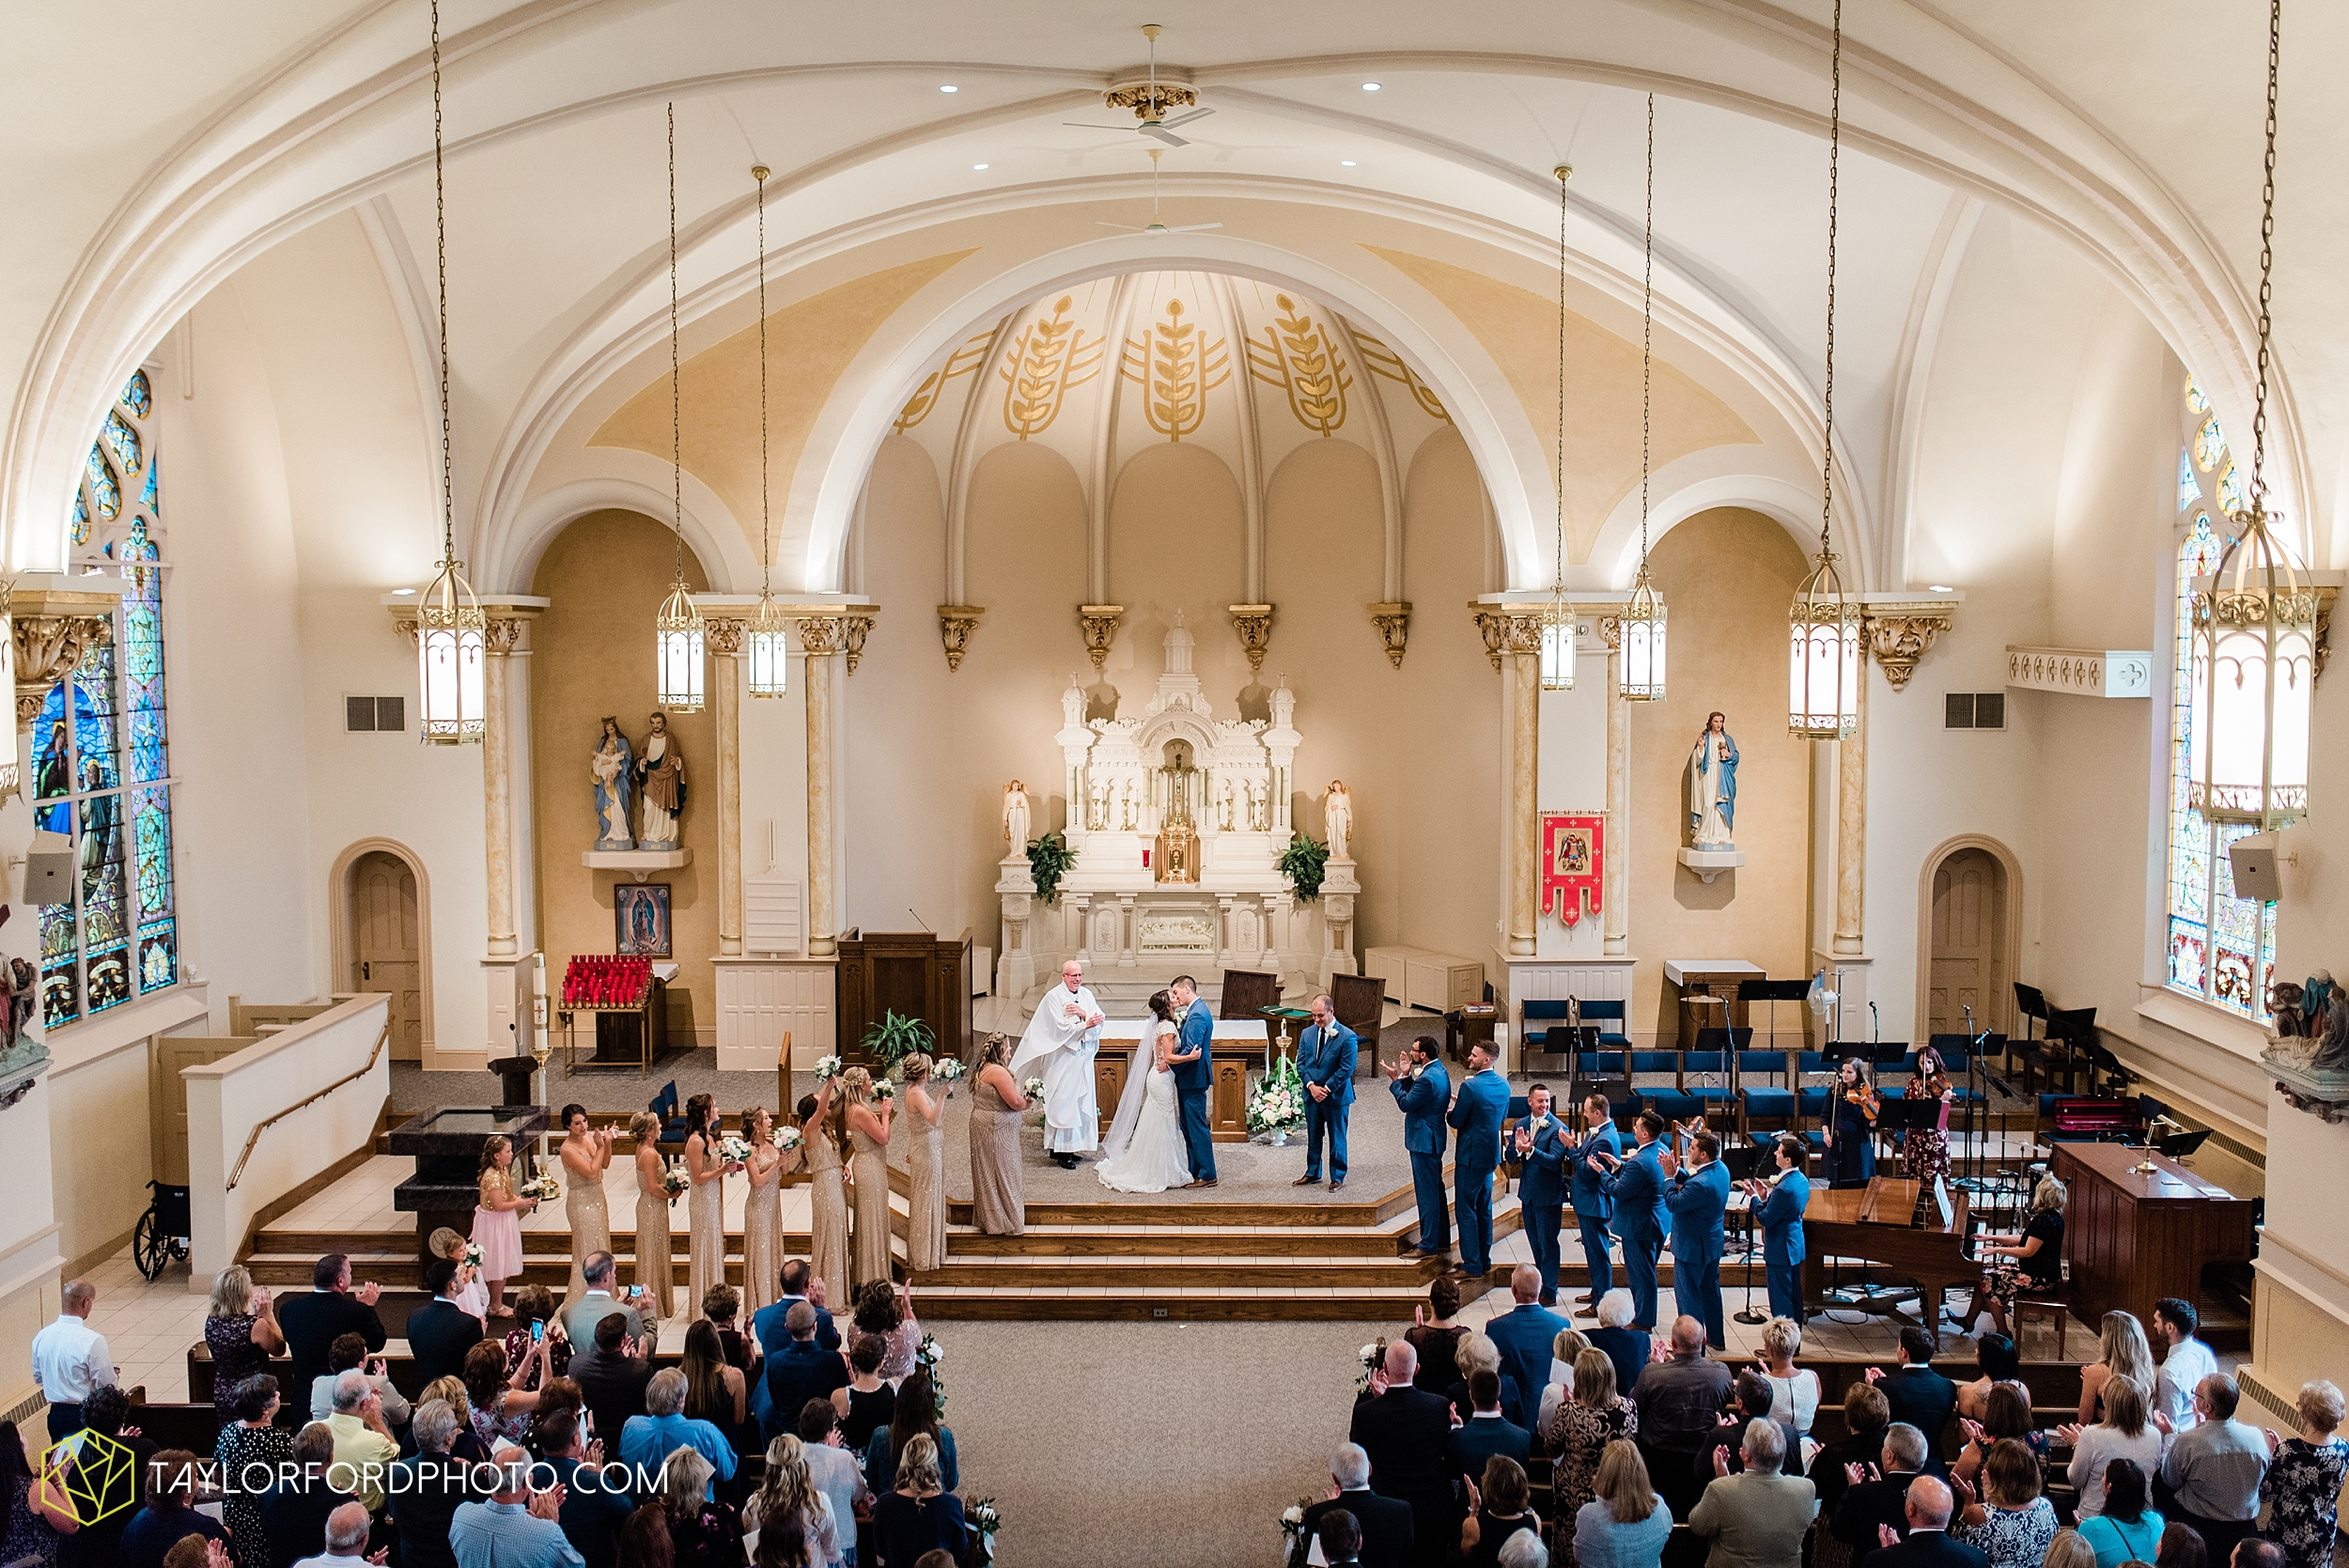 kacee-haden-sholl-second-story-saint-marys-knights-of-columbus-defiance-ohio-wedding-photographer-taylor-ford-photography_0156.jpg